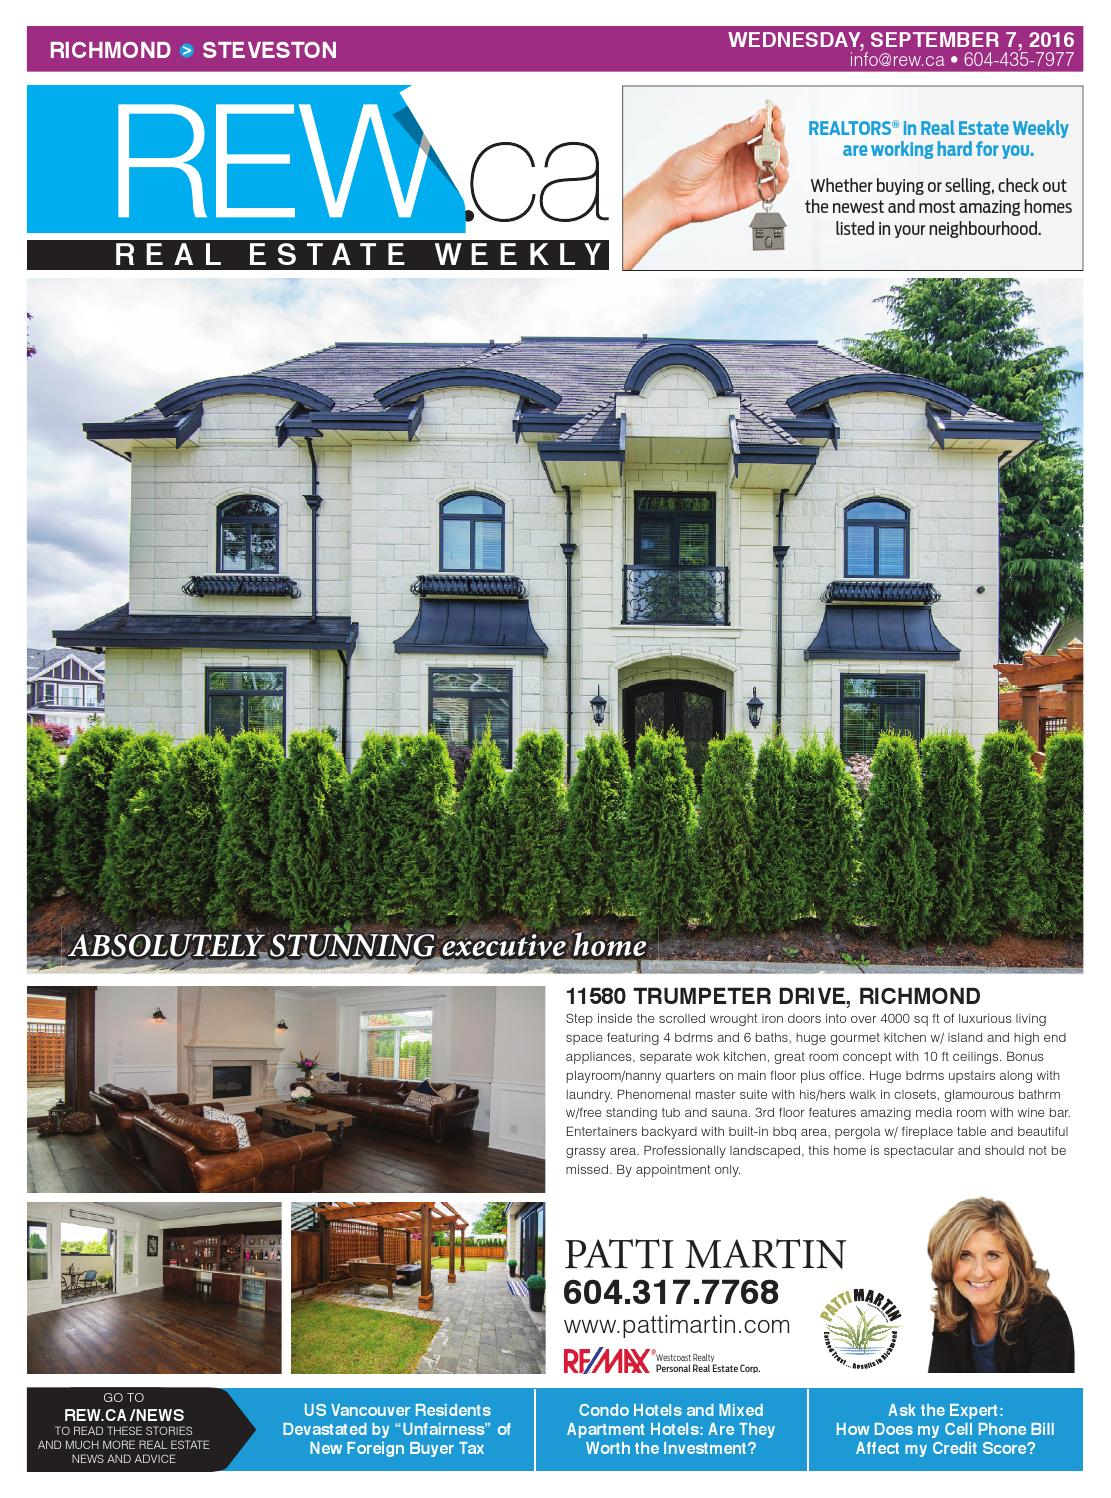 RICHMOND Sept 7, 2016 Real Estate Weekly by Real Estate Weekly - issuu